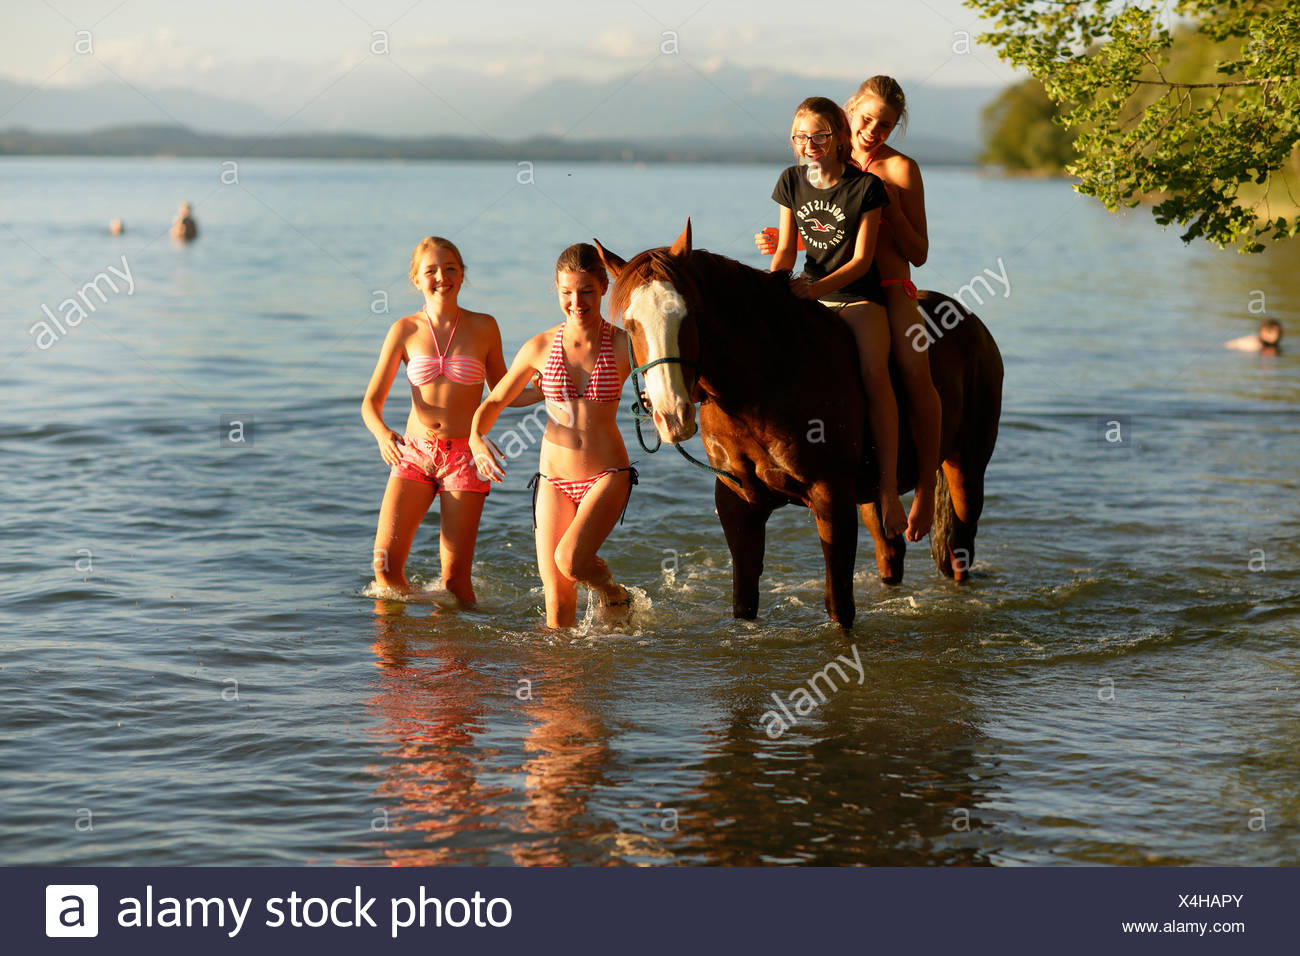 Four girls with a horse in lake Starnberg, Ammerland, Munsing, Upper Bavaria, Germany - Stock Image